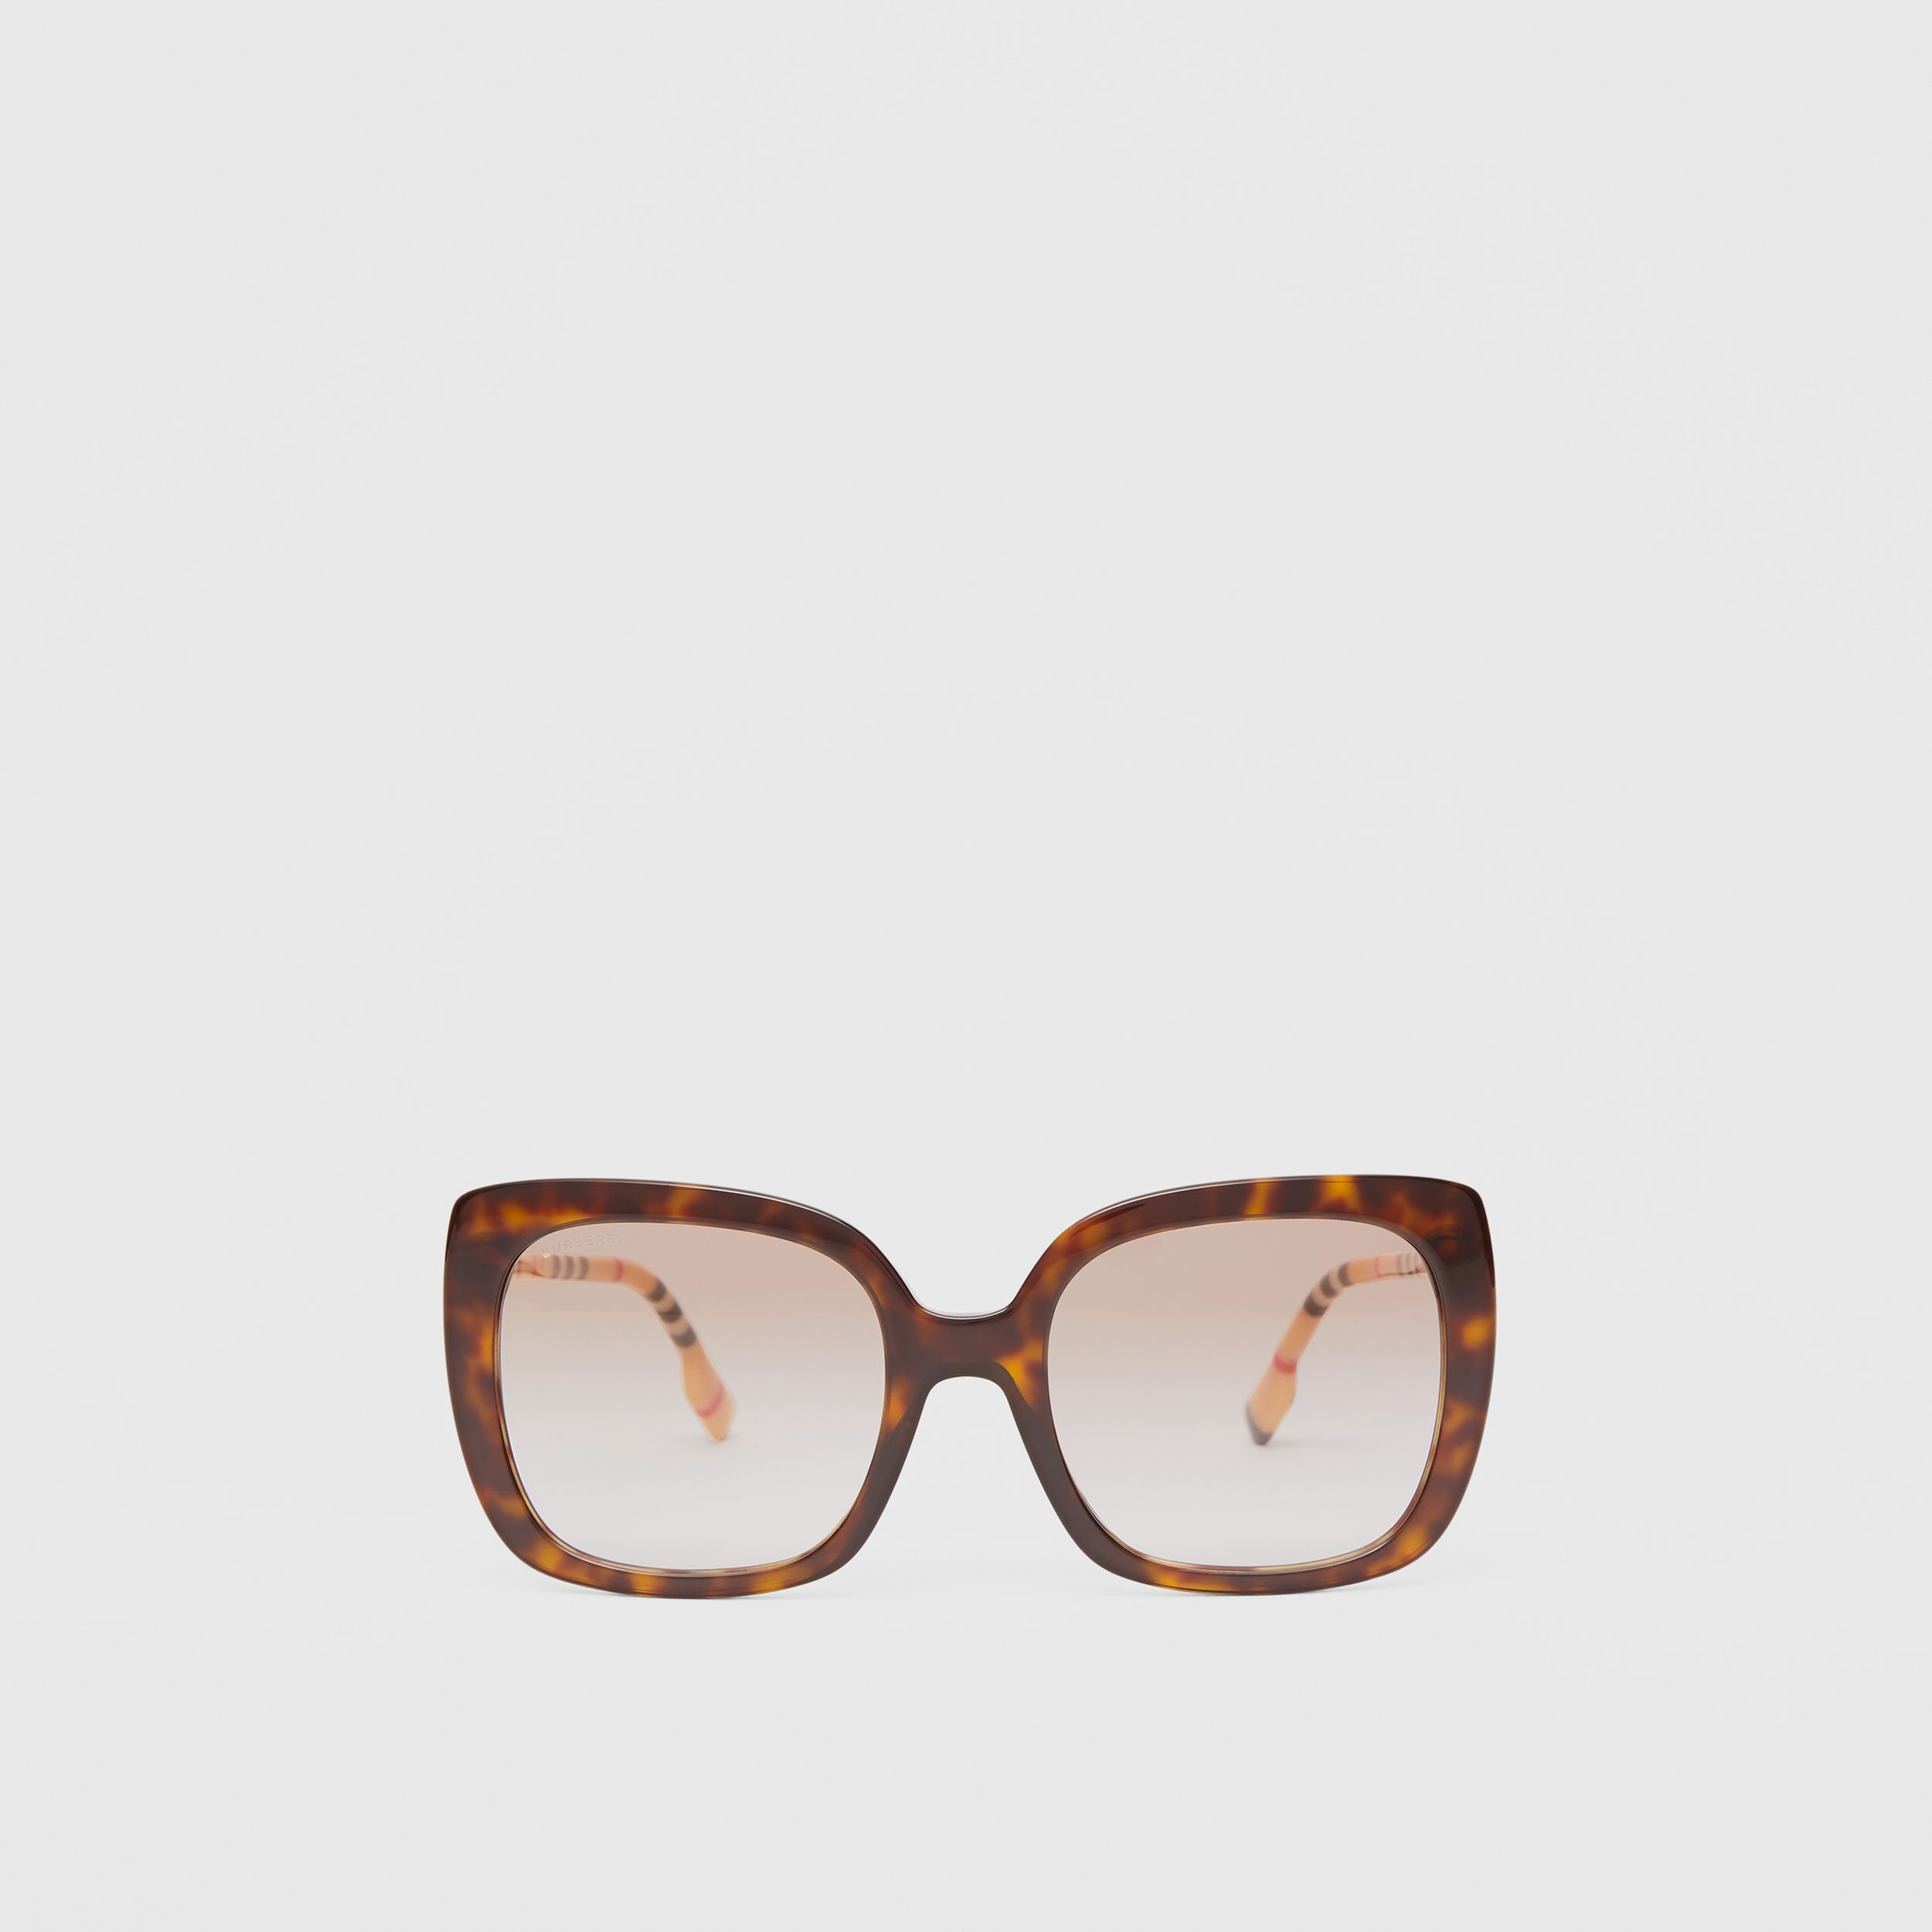 Oversized Square Frame Sunglasses in Tortoiseshell - Women | Burberry Canada - 1